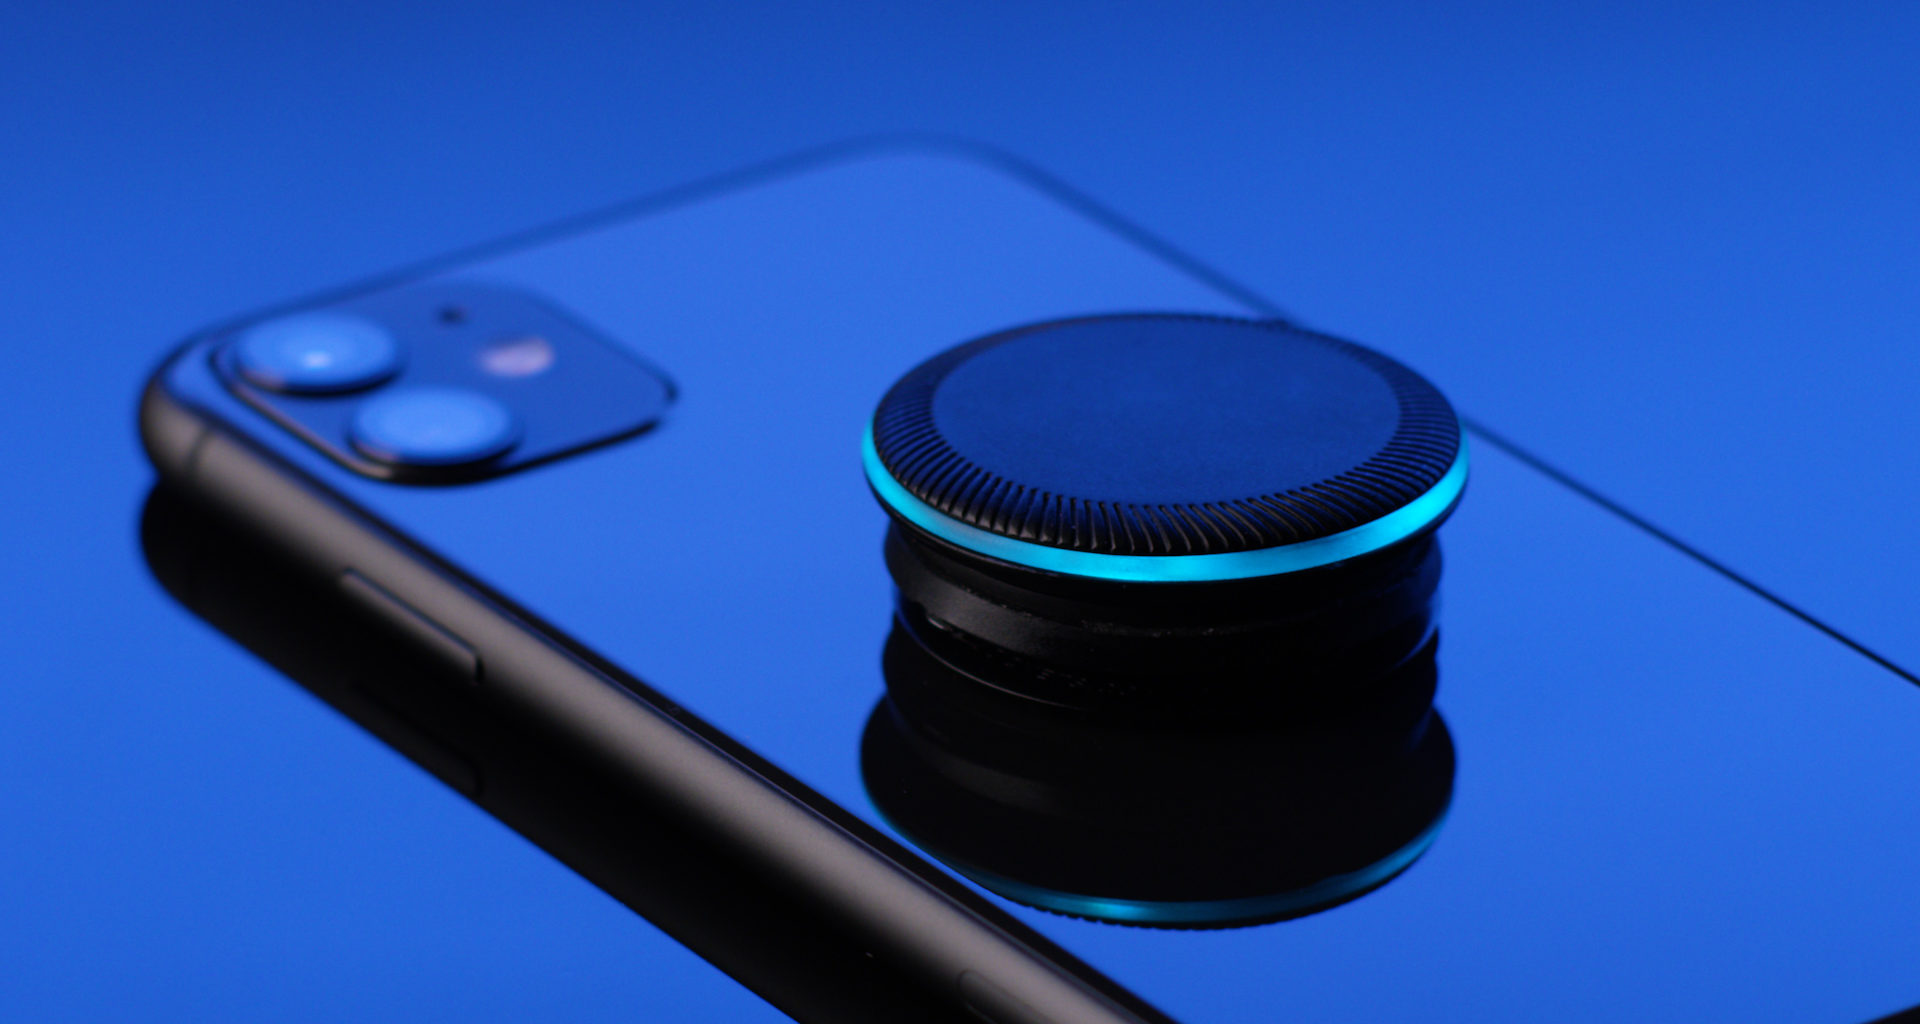 TalkSocket offers hands-free use of Amazon Alexa on any smartphoneTalkSocket offers hands-free use of Amazon Alexa on any smartphone